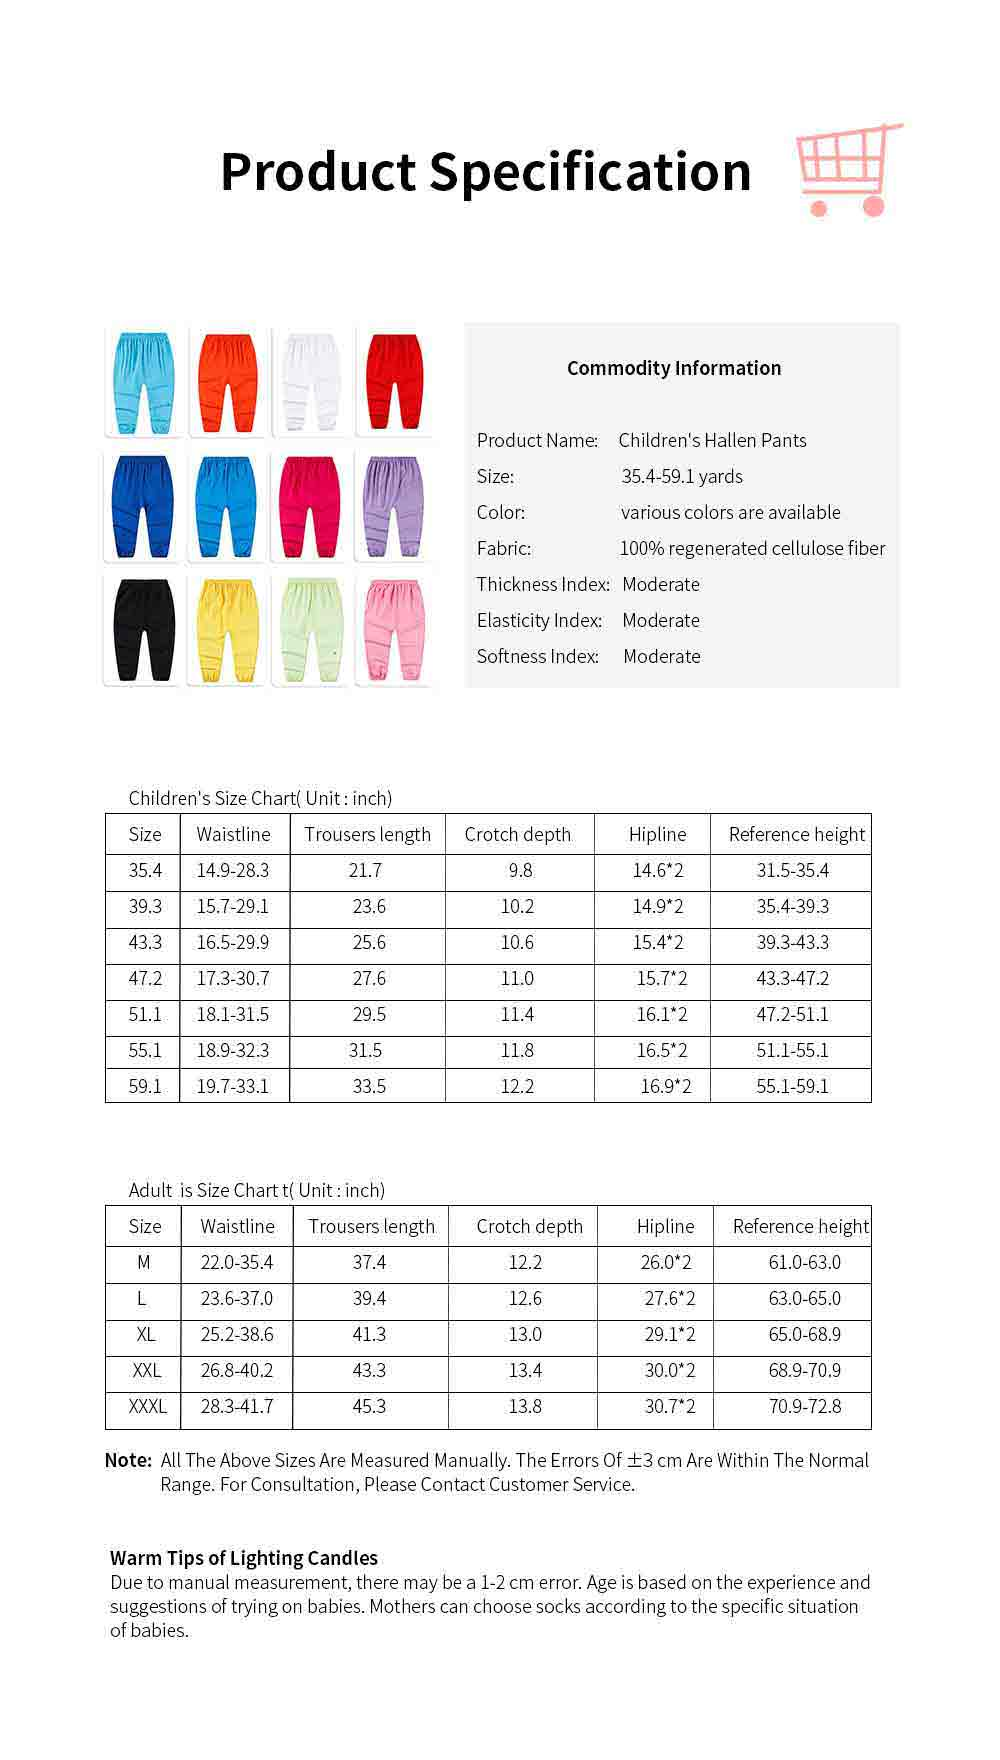 Boy Pants Silk Stylish Design Anti-Mosquito Elastic Cotton for Children Summer Thin Lantern Pants Harem Pants 5